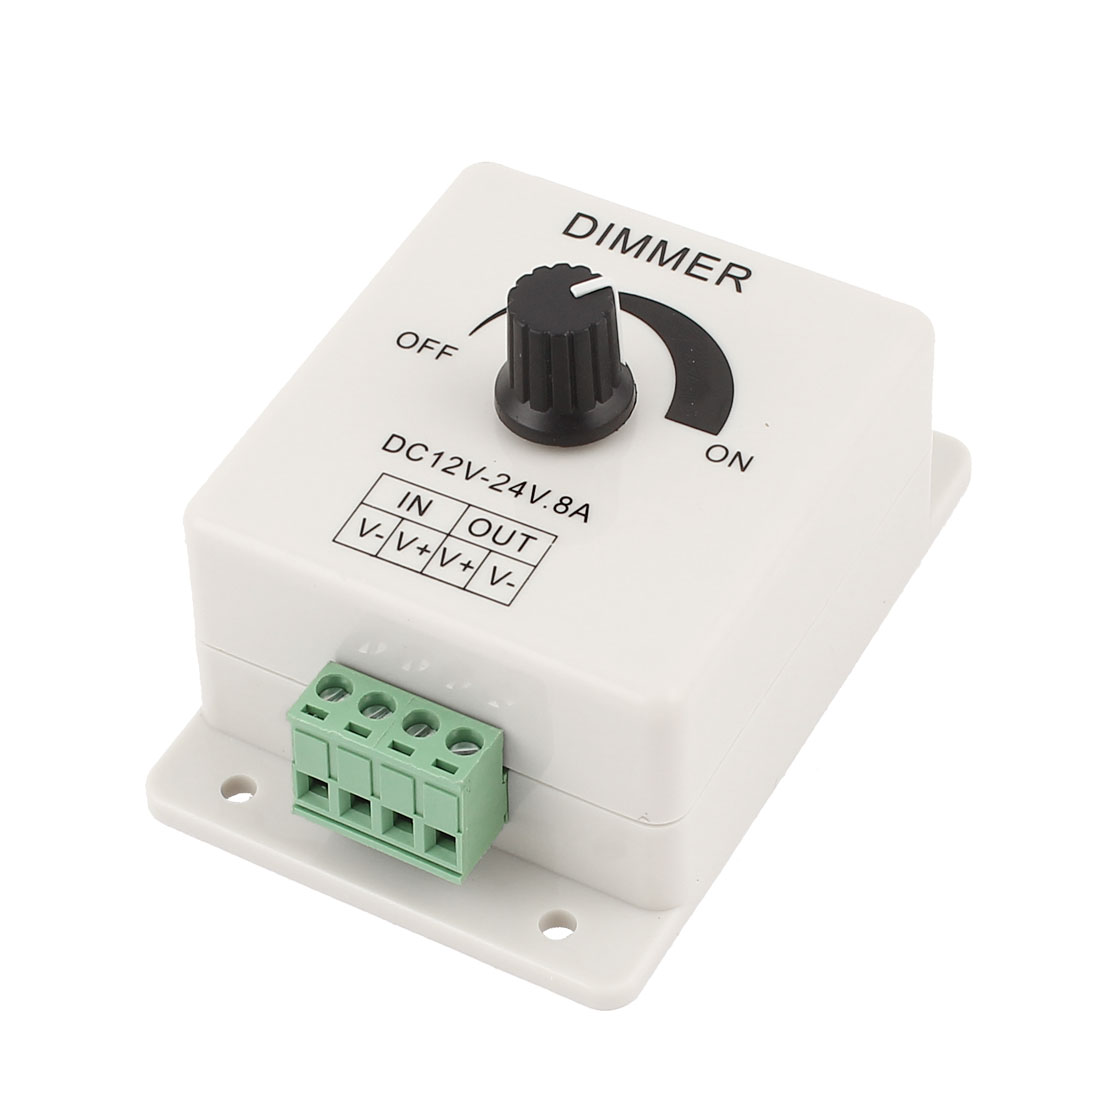 DC12V-24V 8A LED Switch Dimmer Cotroller for 3528 5050 LED Strip Single Color